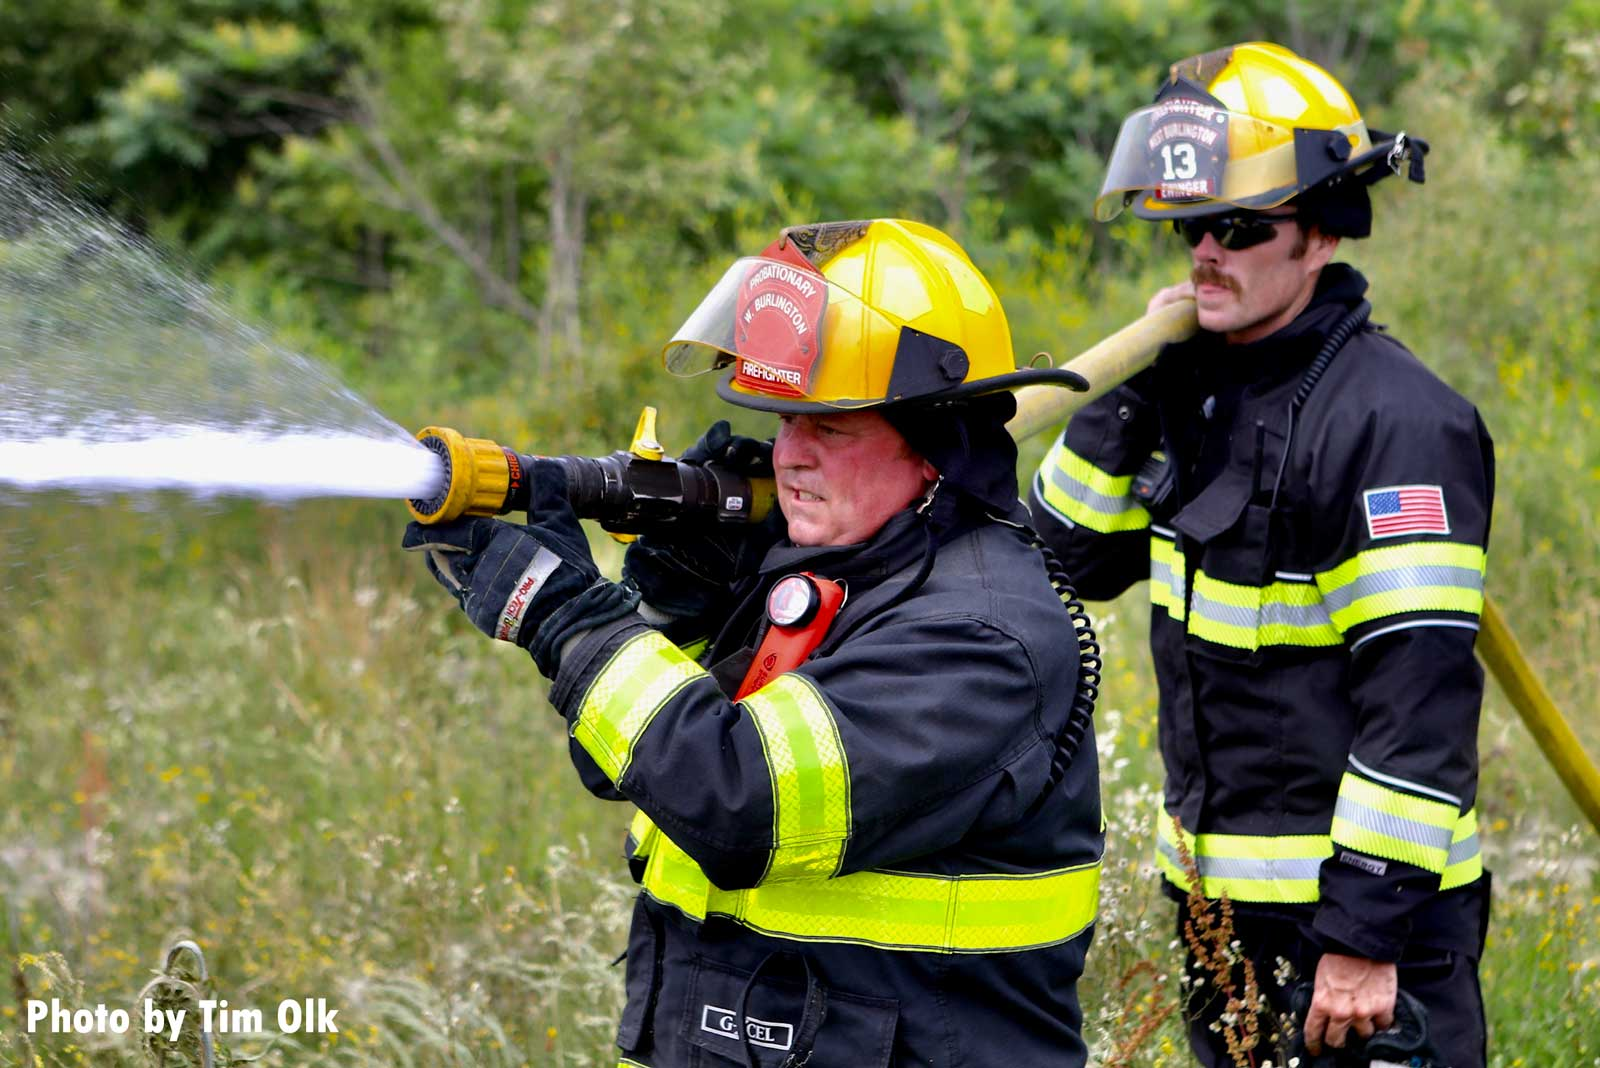 Firefighters with a hoseline